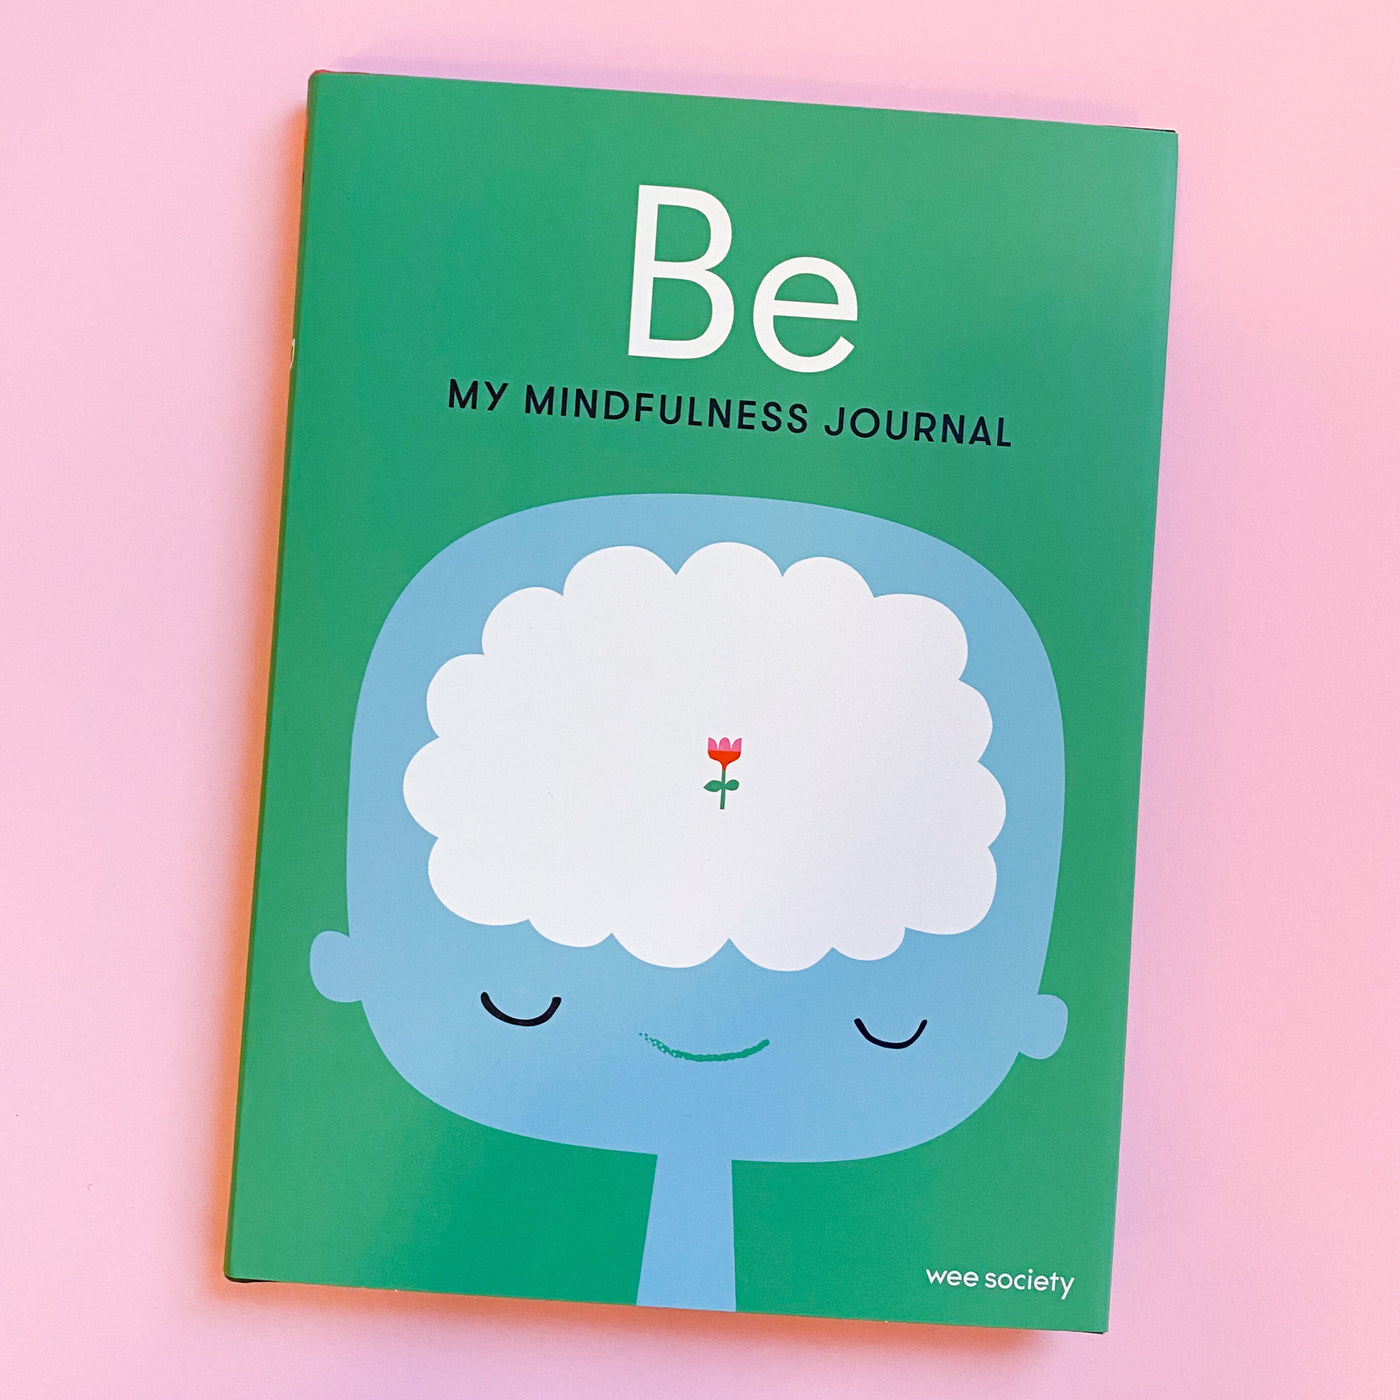 Be My Mindfulness Journal by Wee Society